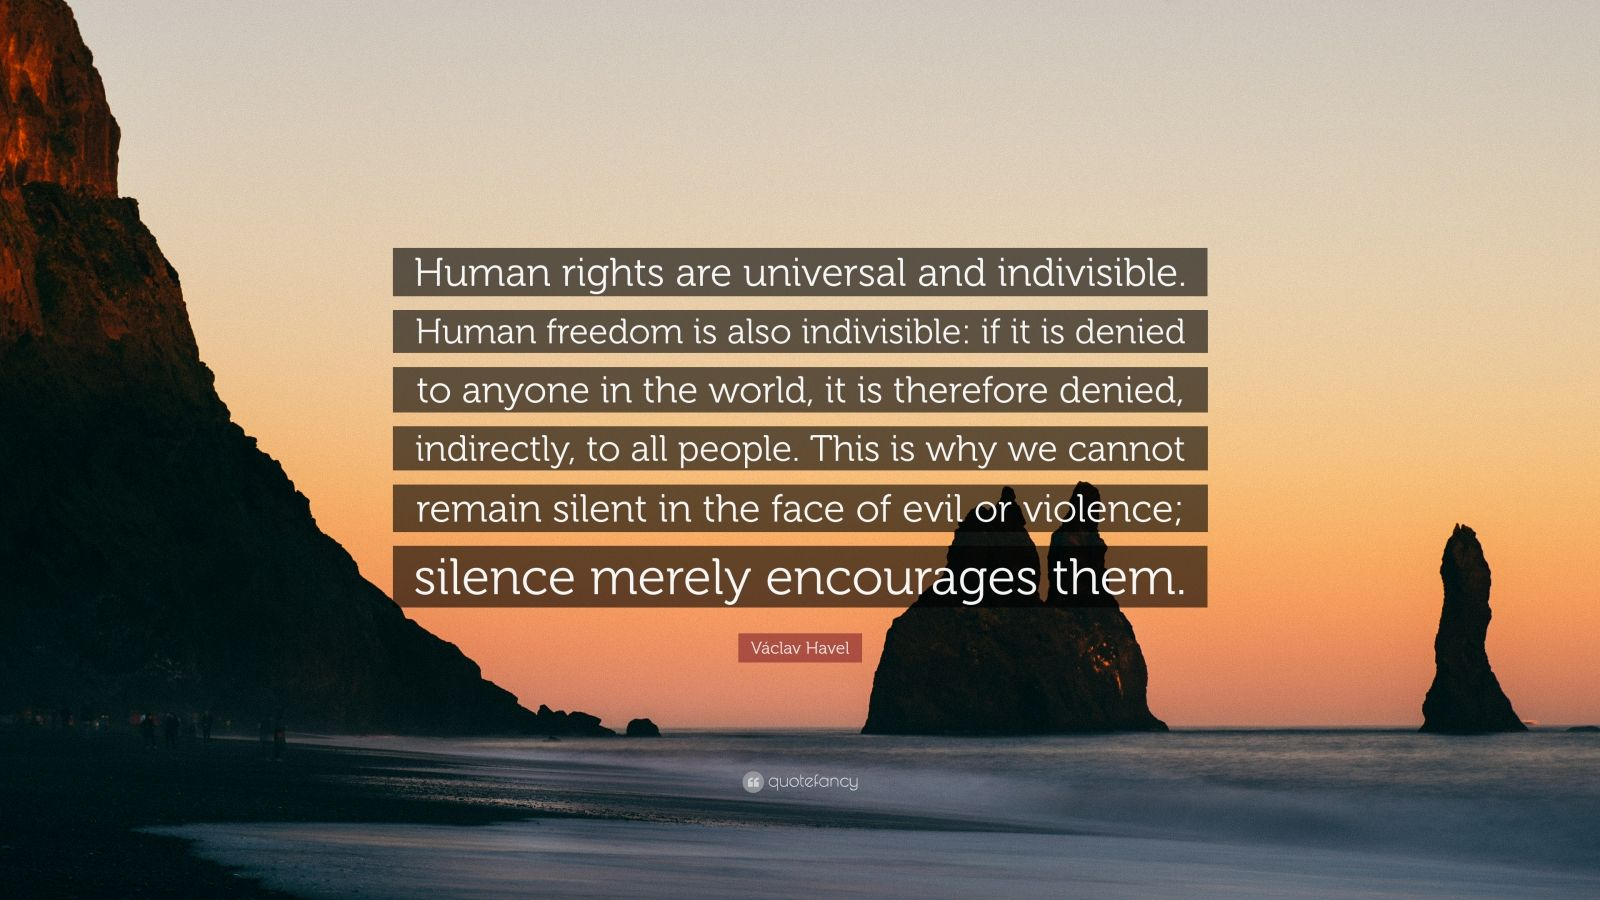 "Václav Havel Quote: ""Human rights are universal and indivisible. Human freedom is also indivisible: if it is denied to anyone in the world, it is therefore denied, indirectly, to all people. This is why we cannot remain silent in the face of evil or violence; silence merely encourages them."""